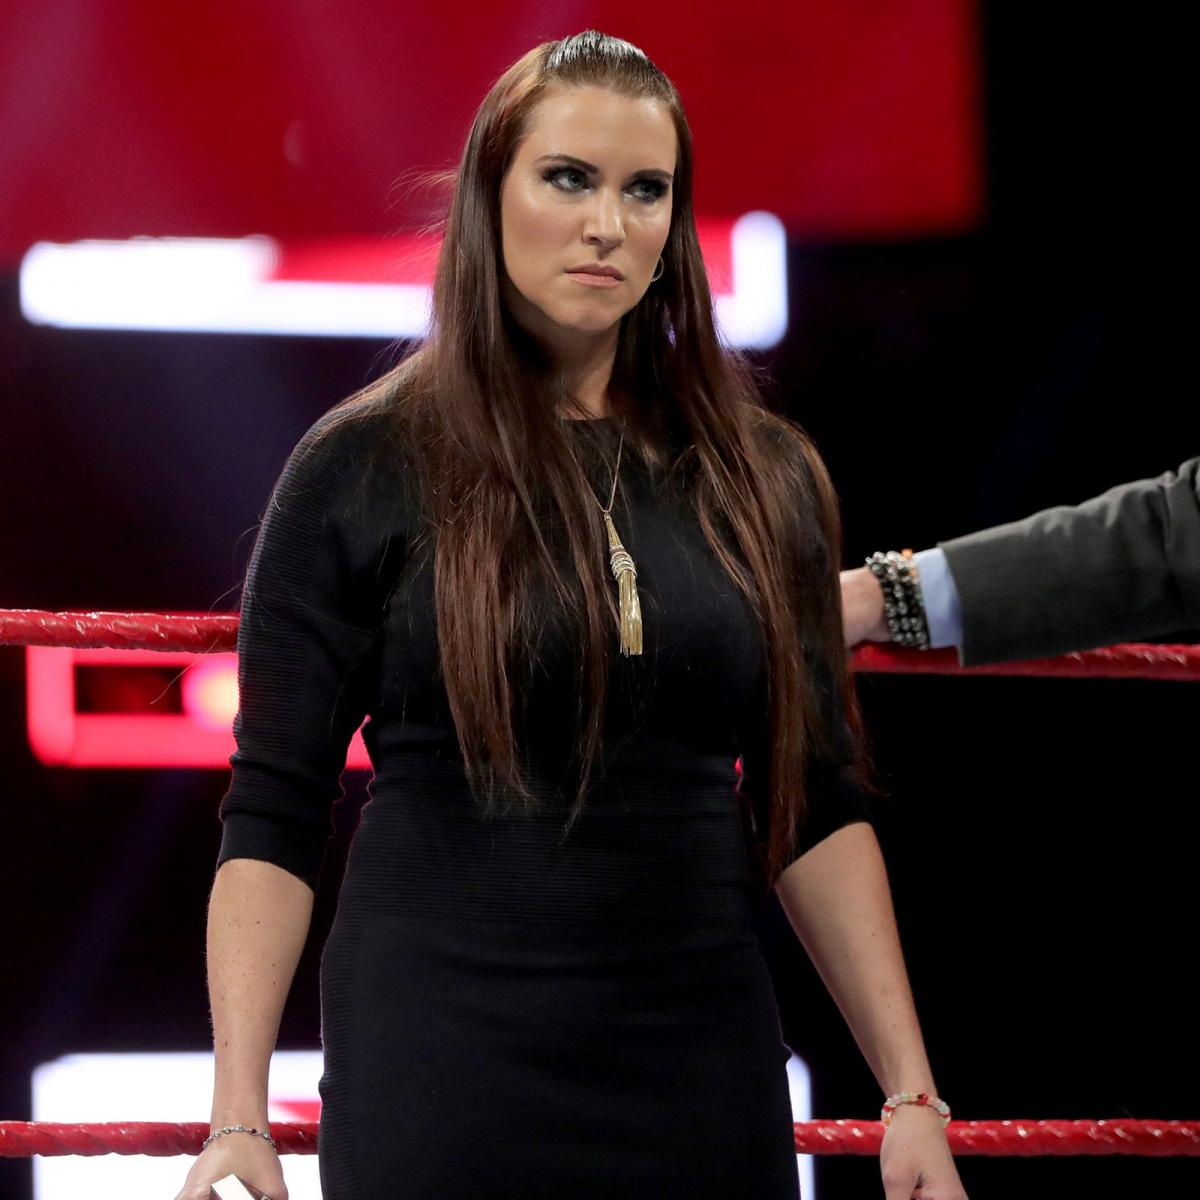 Stephanie Mcmahon Images Stephanie Mcmahon Hd Wallpaper And Background Photos